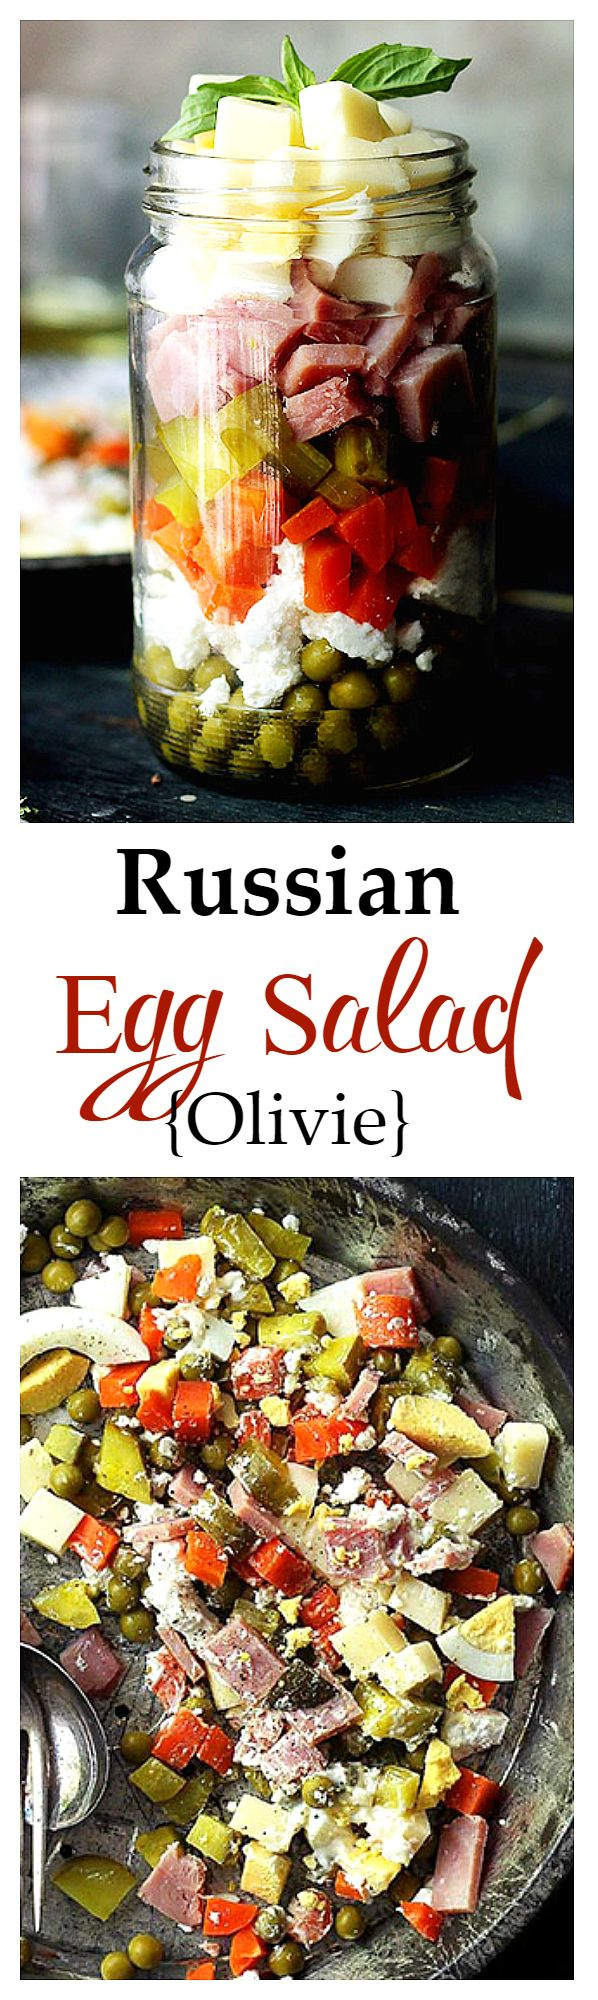 Russian Egg Salad - A delicious salad recipe made with ham, eggs, cheeses, carrots, peas, and pickles. Also known as Olivie Salad. Get the recipe on diethood.com